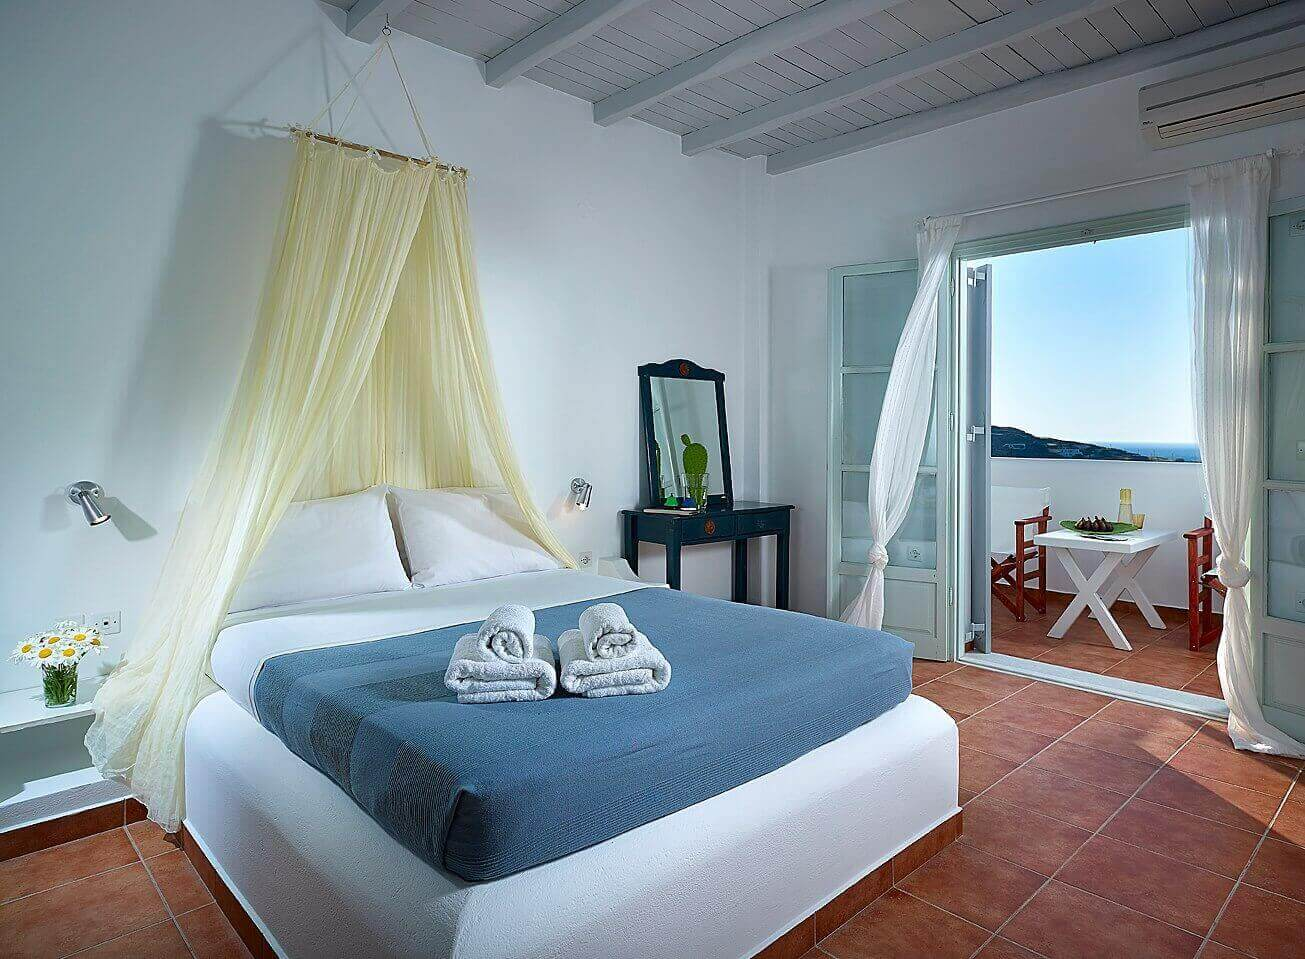 Accommodation Accommodation triklini rooms milos gallis